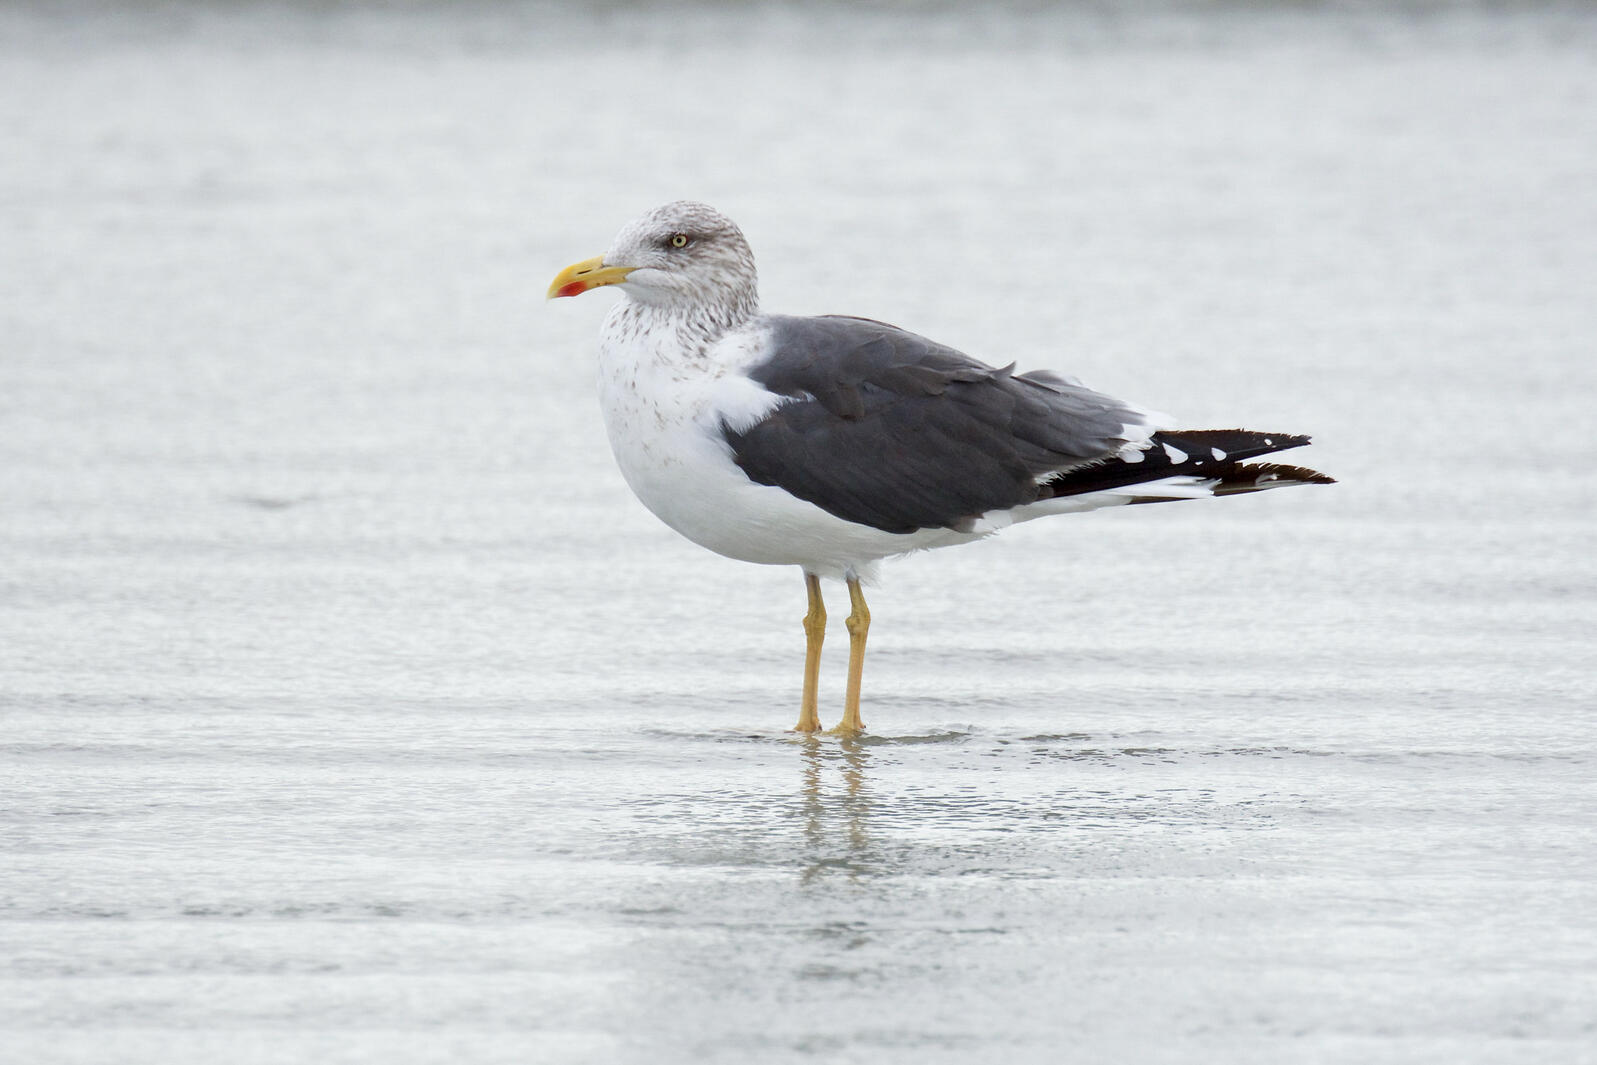 Lesser Black-backed Gull. ohfalcon72/Flickr (CC BY NC ND 2.0)